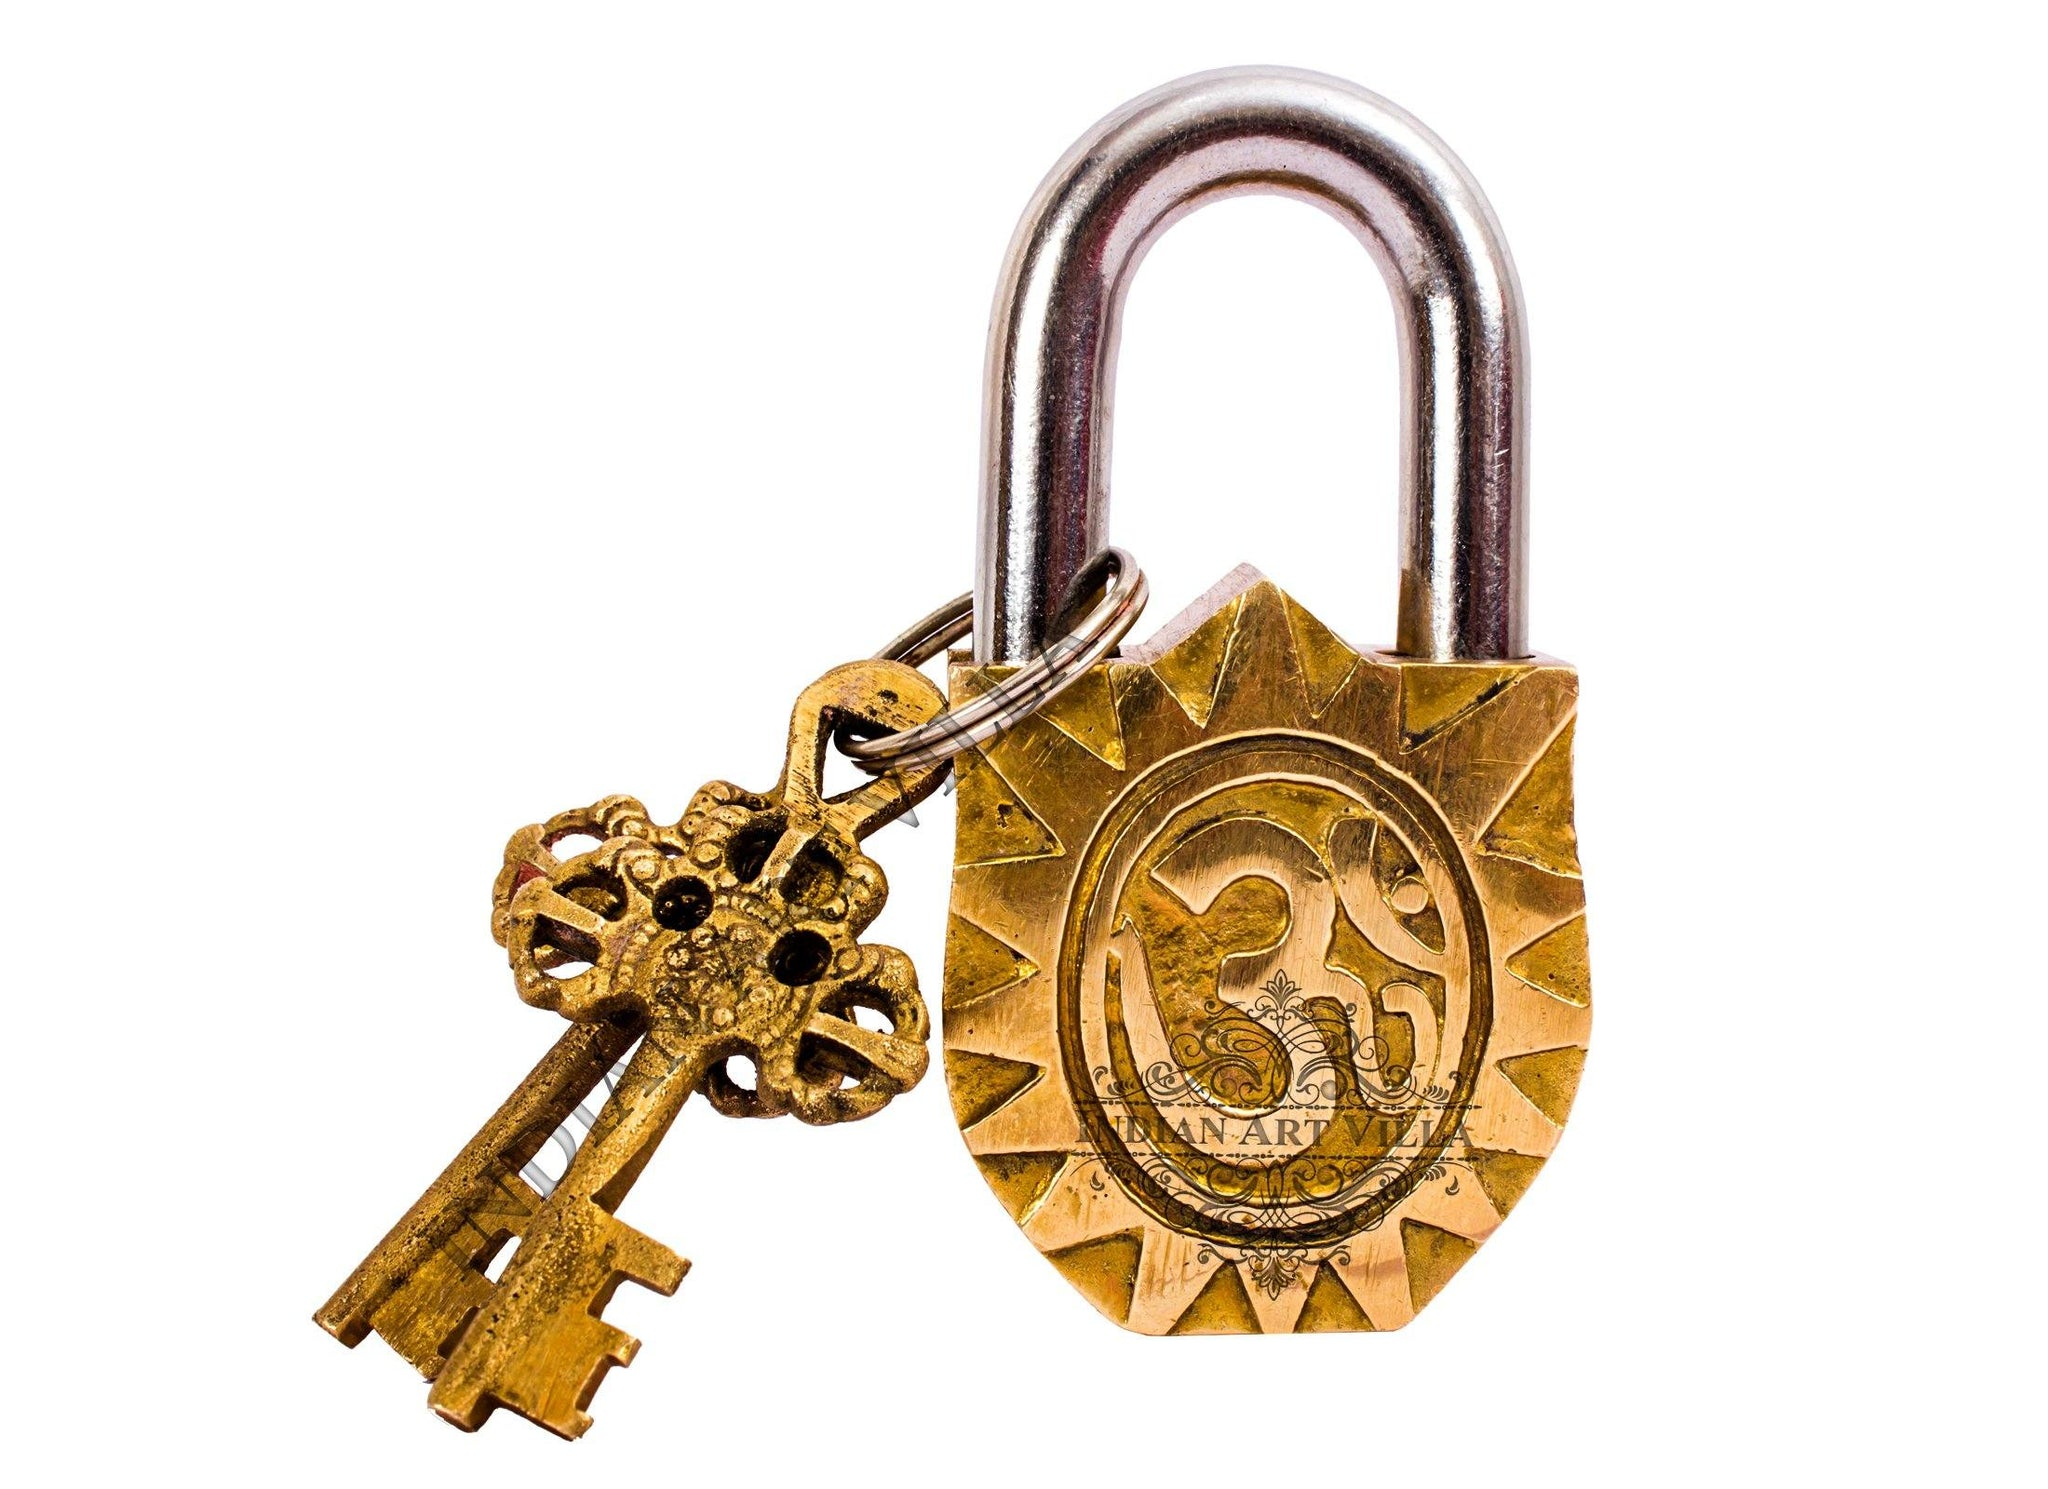 Brass Handmade Laxmi Mata Design Lock With 2 Keys